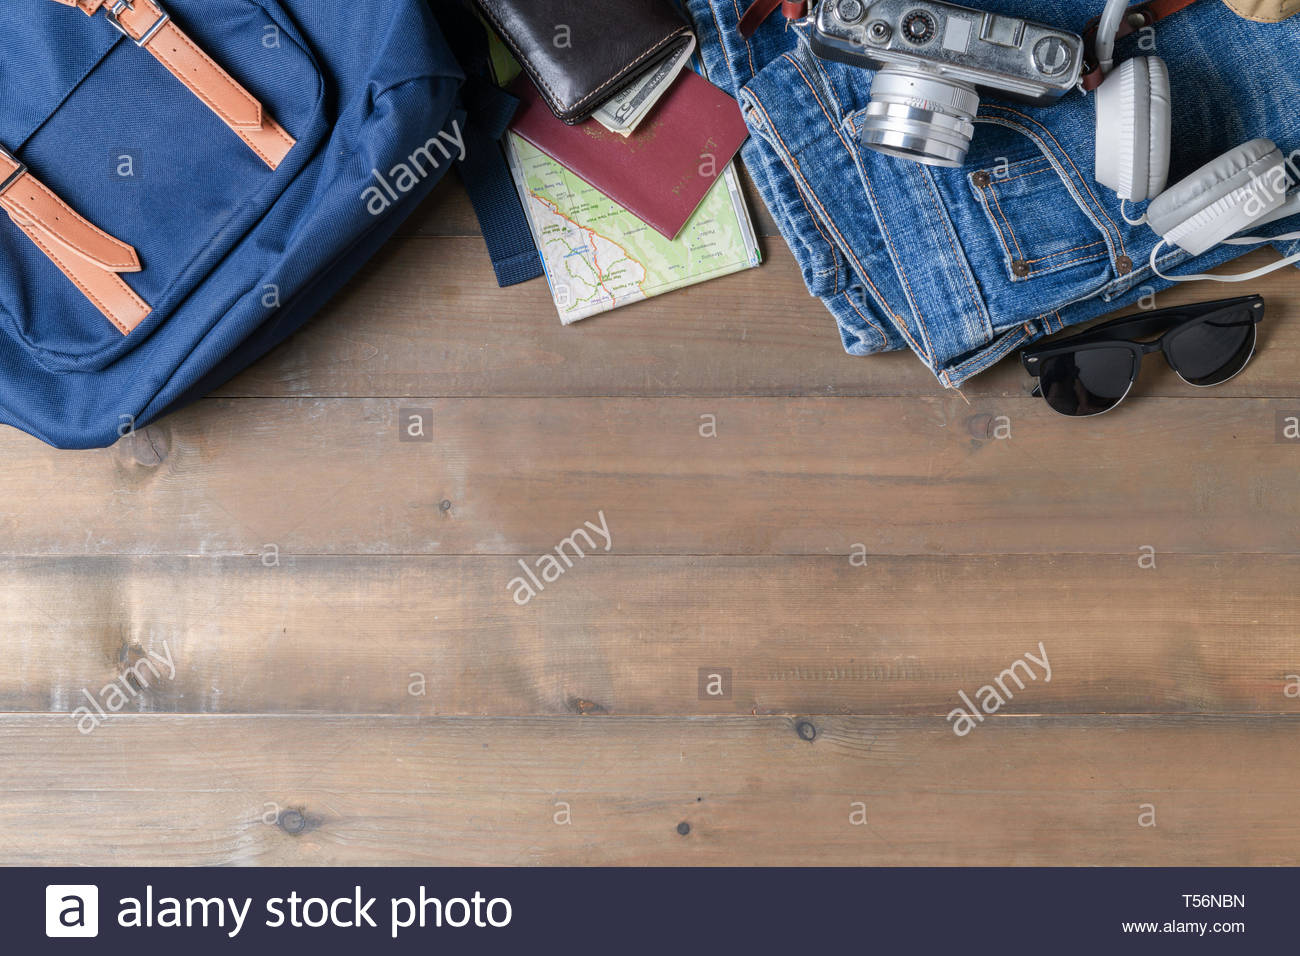 prepare backpack accessories and travel items on wood background 1300x956